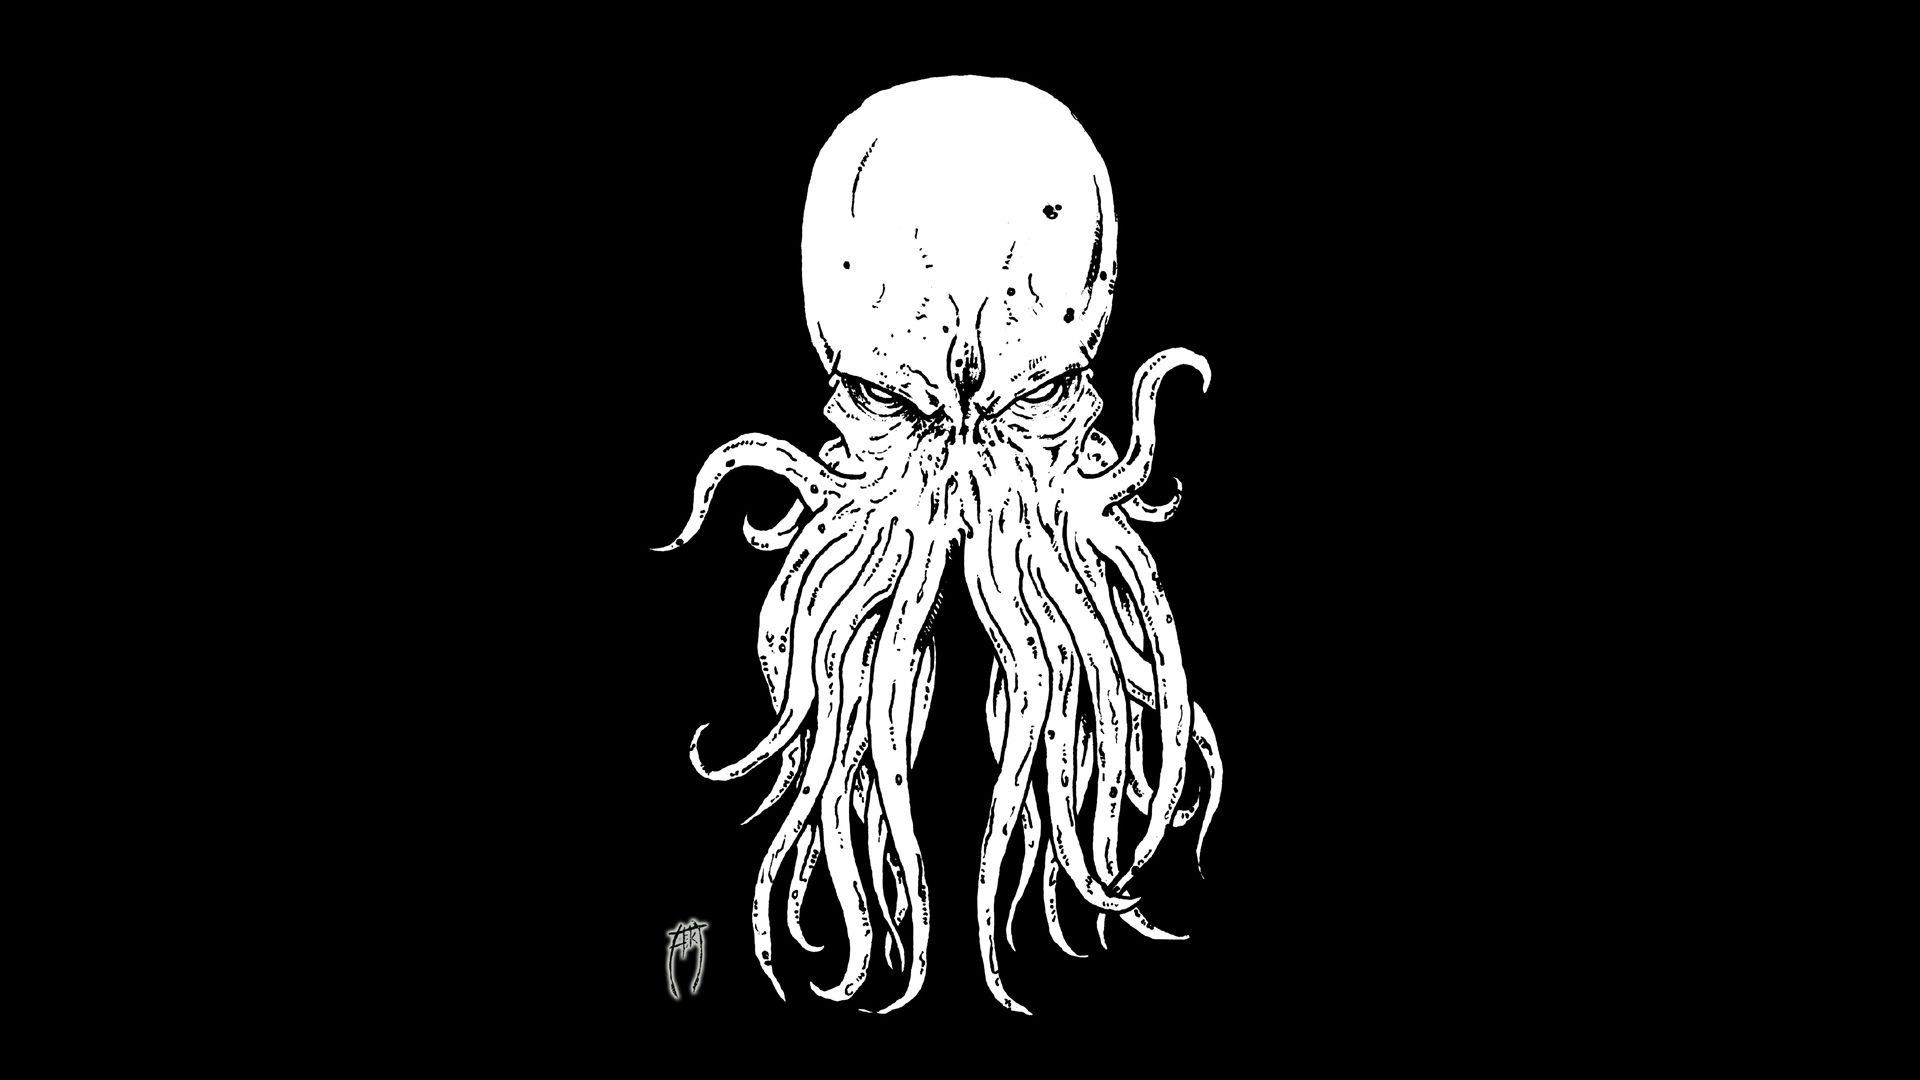 Download free cthulhu wallpapers for your mobile phone – most